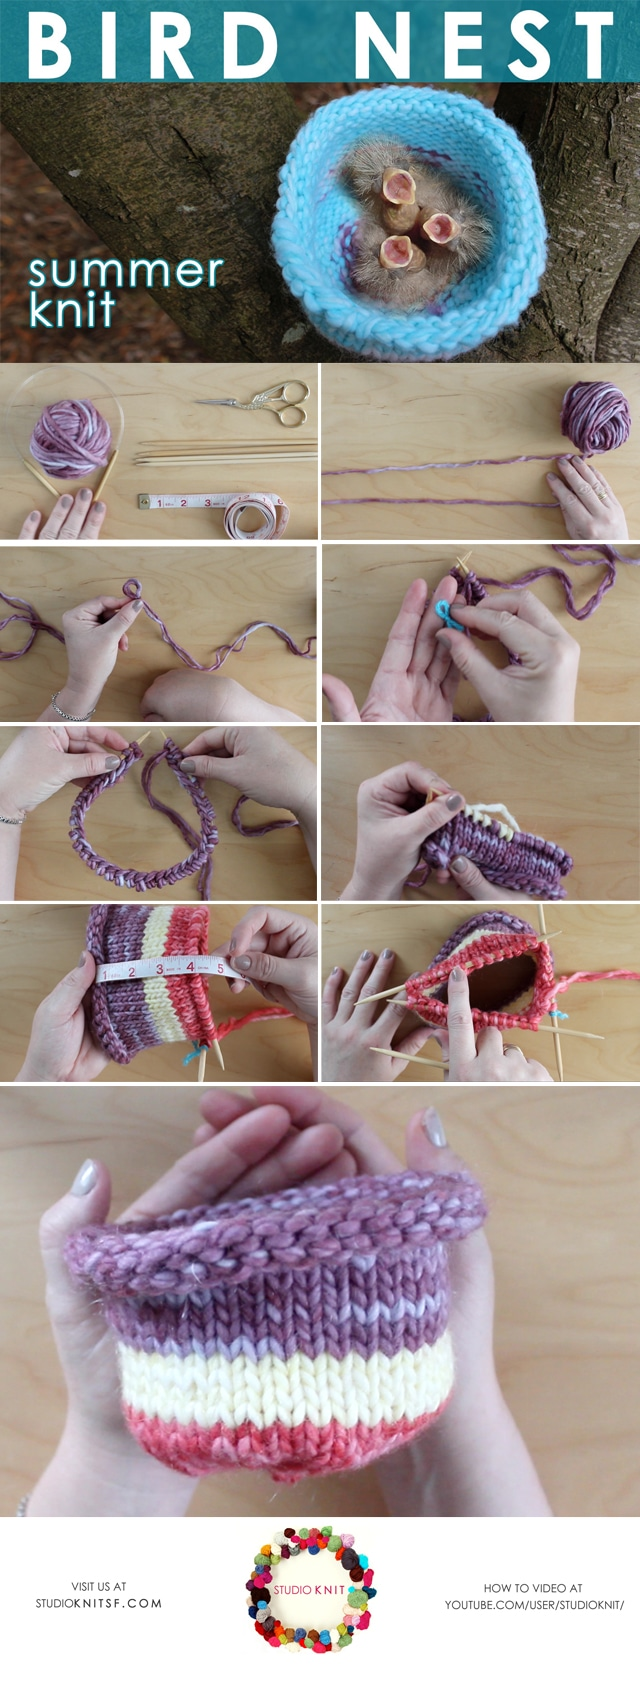 Knit a BIRD NEST for WildCare: Summer Knit Series by Studio Knit